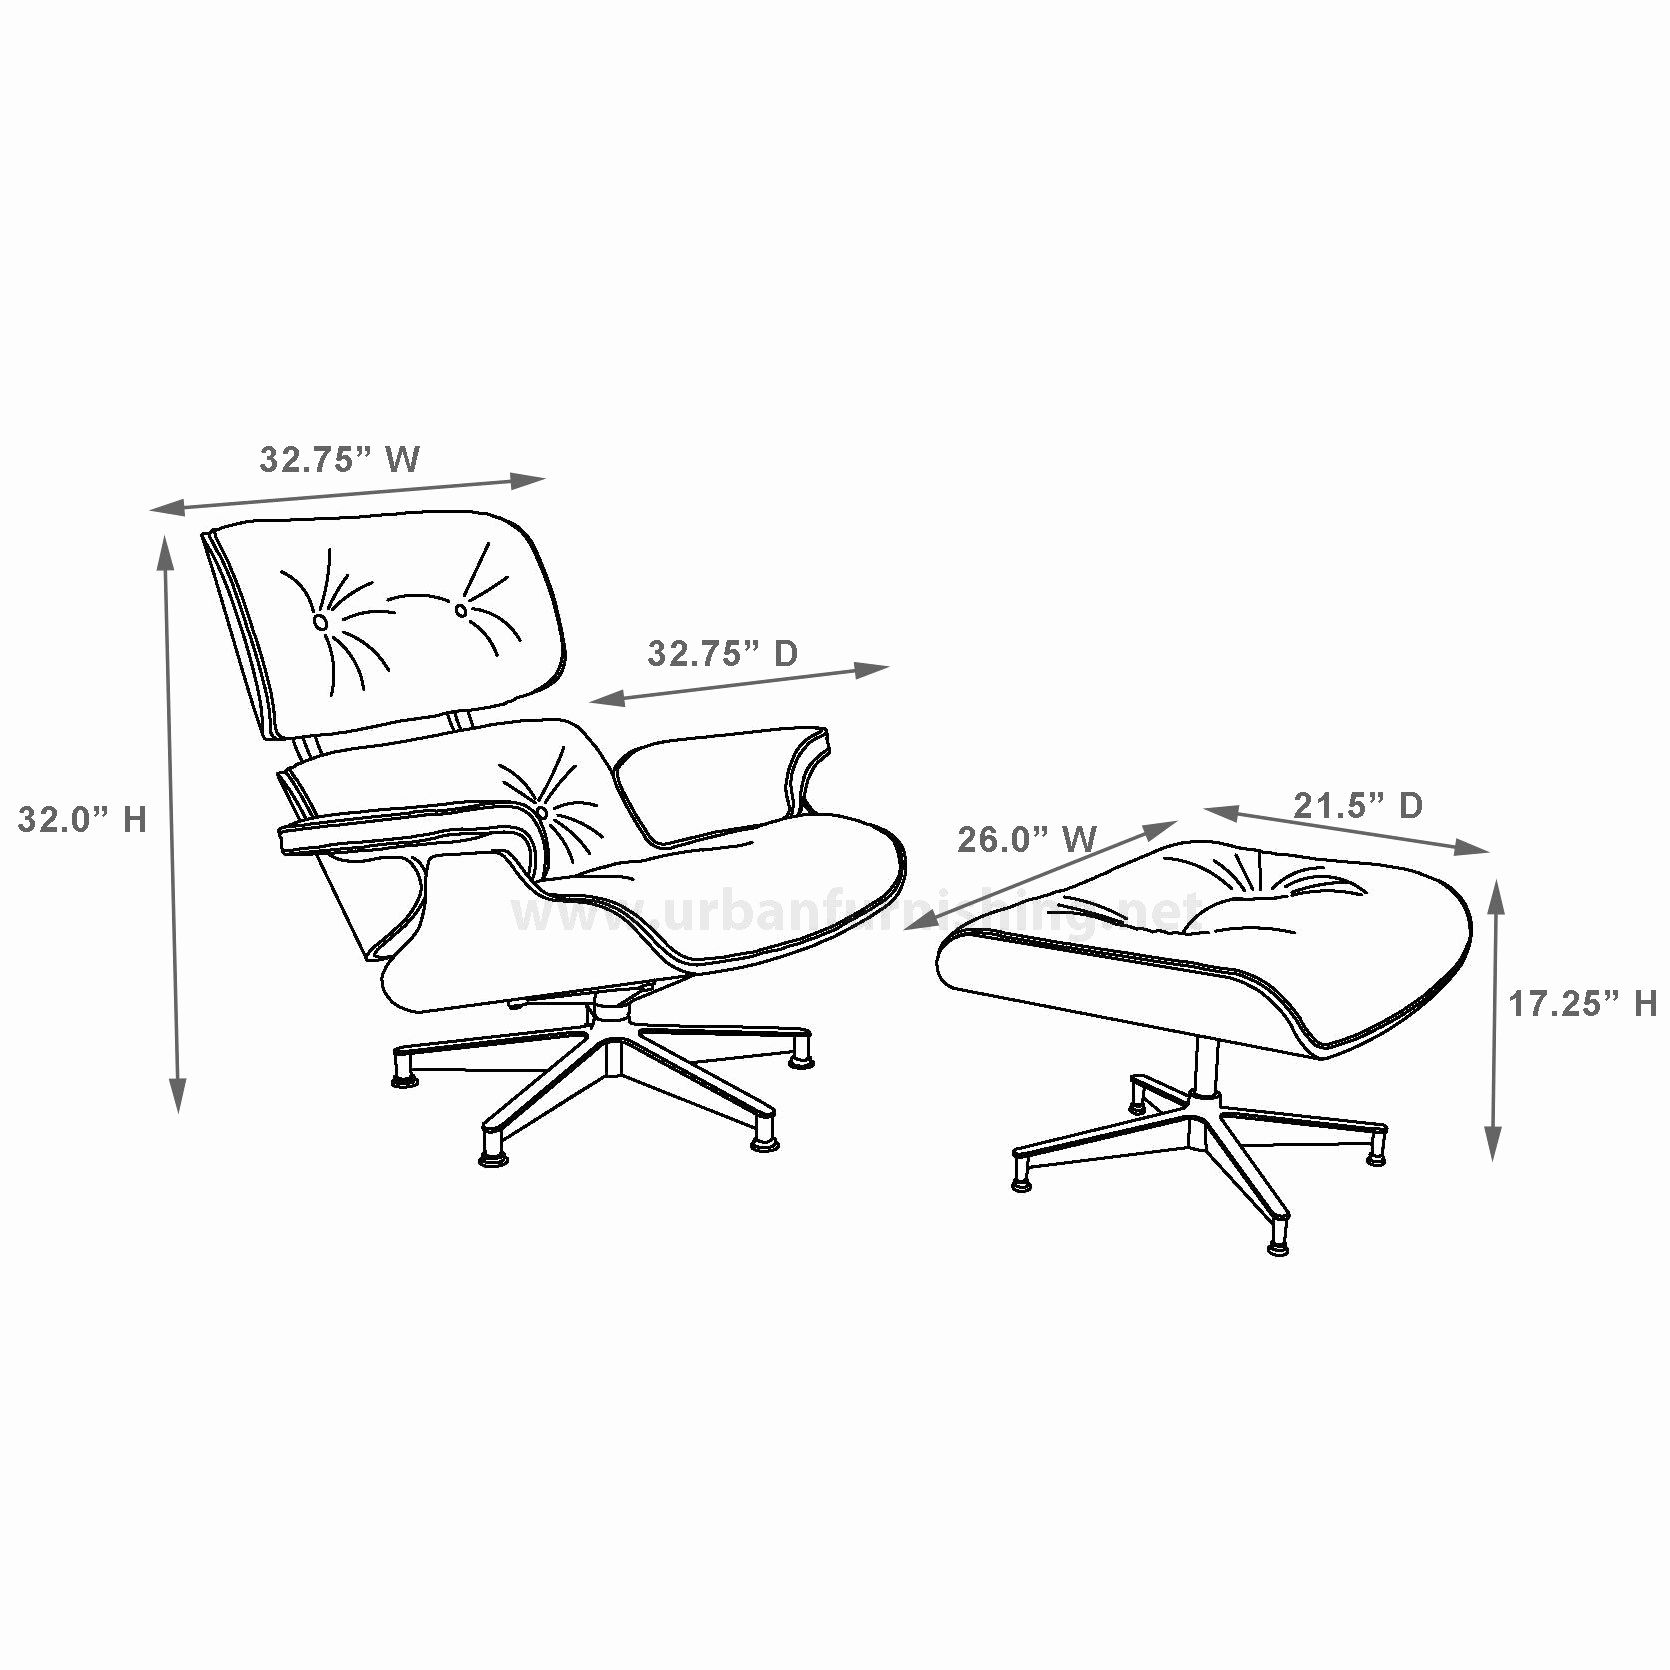 Eames Chair Dimensions Eames Style Lounge Chair And Ottoman 100 Aniline Chair And Ottoman Lounge Chair Eames Lounge